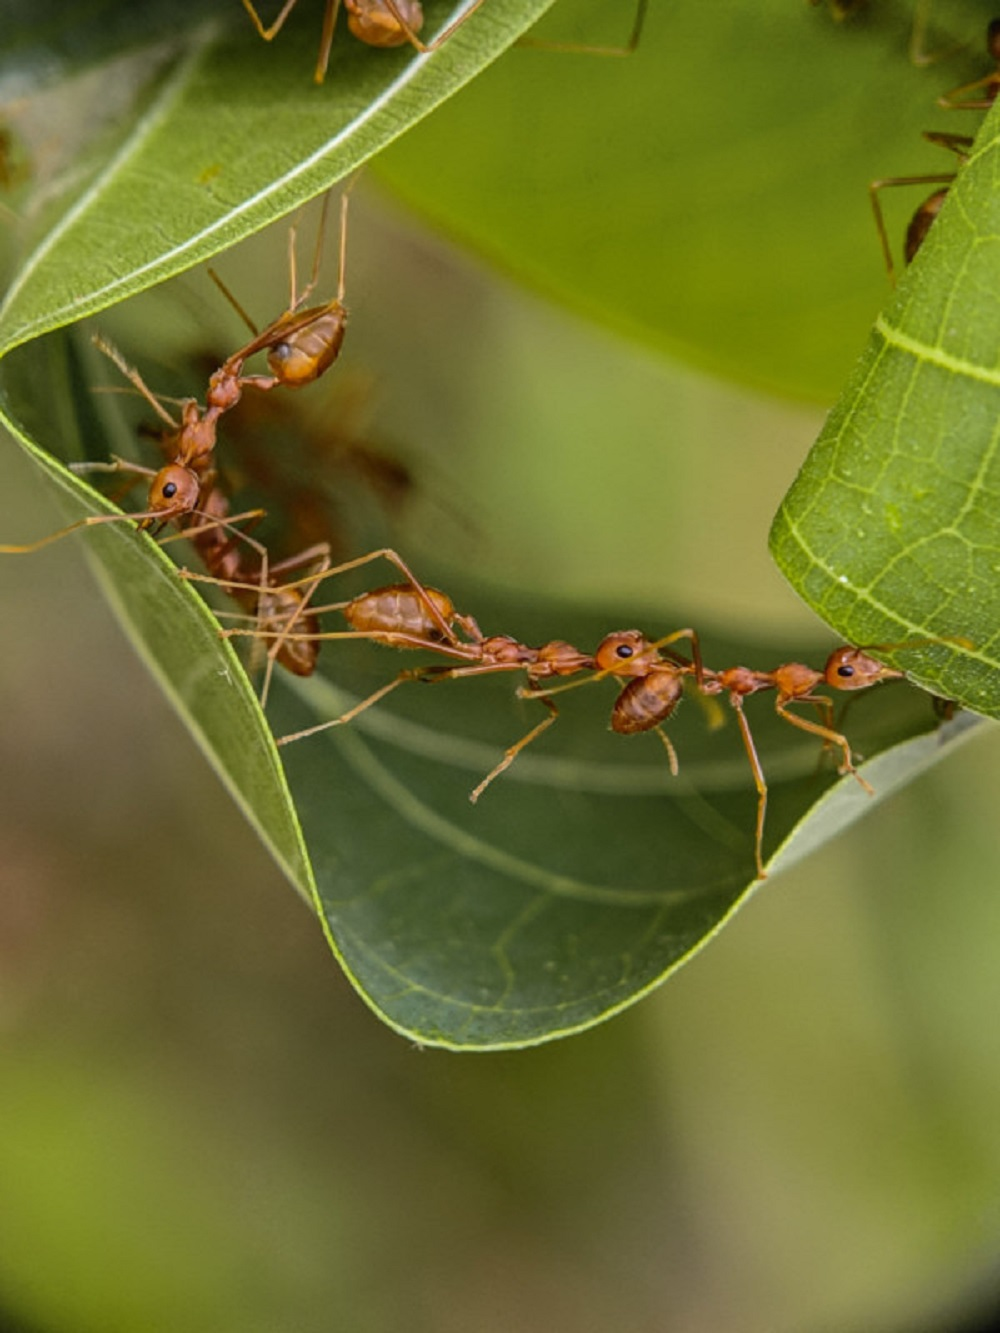 Marching fire ants. One by one by one